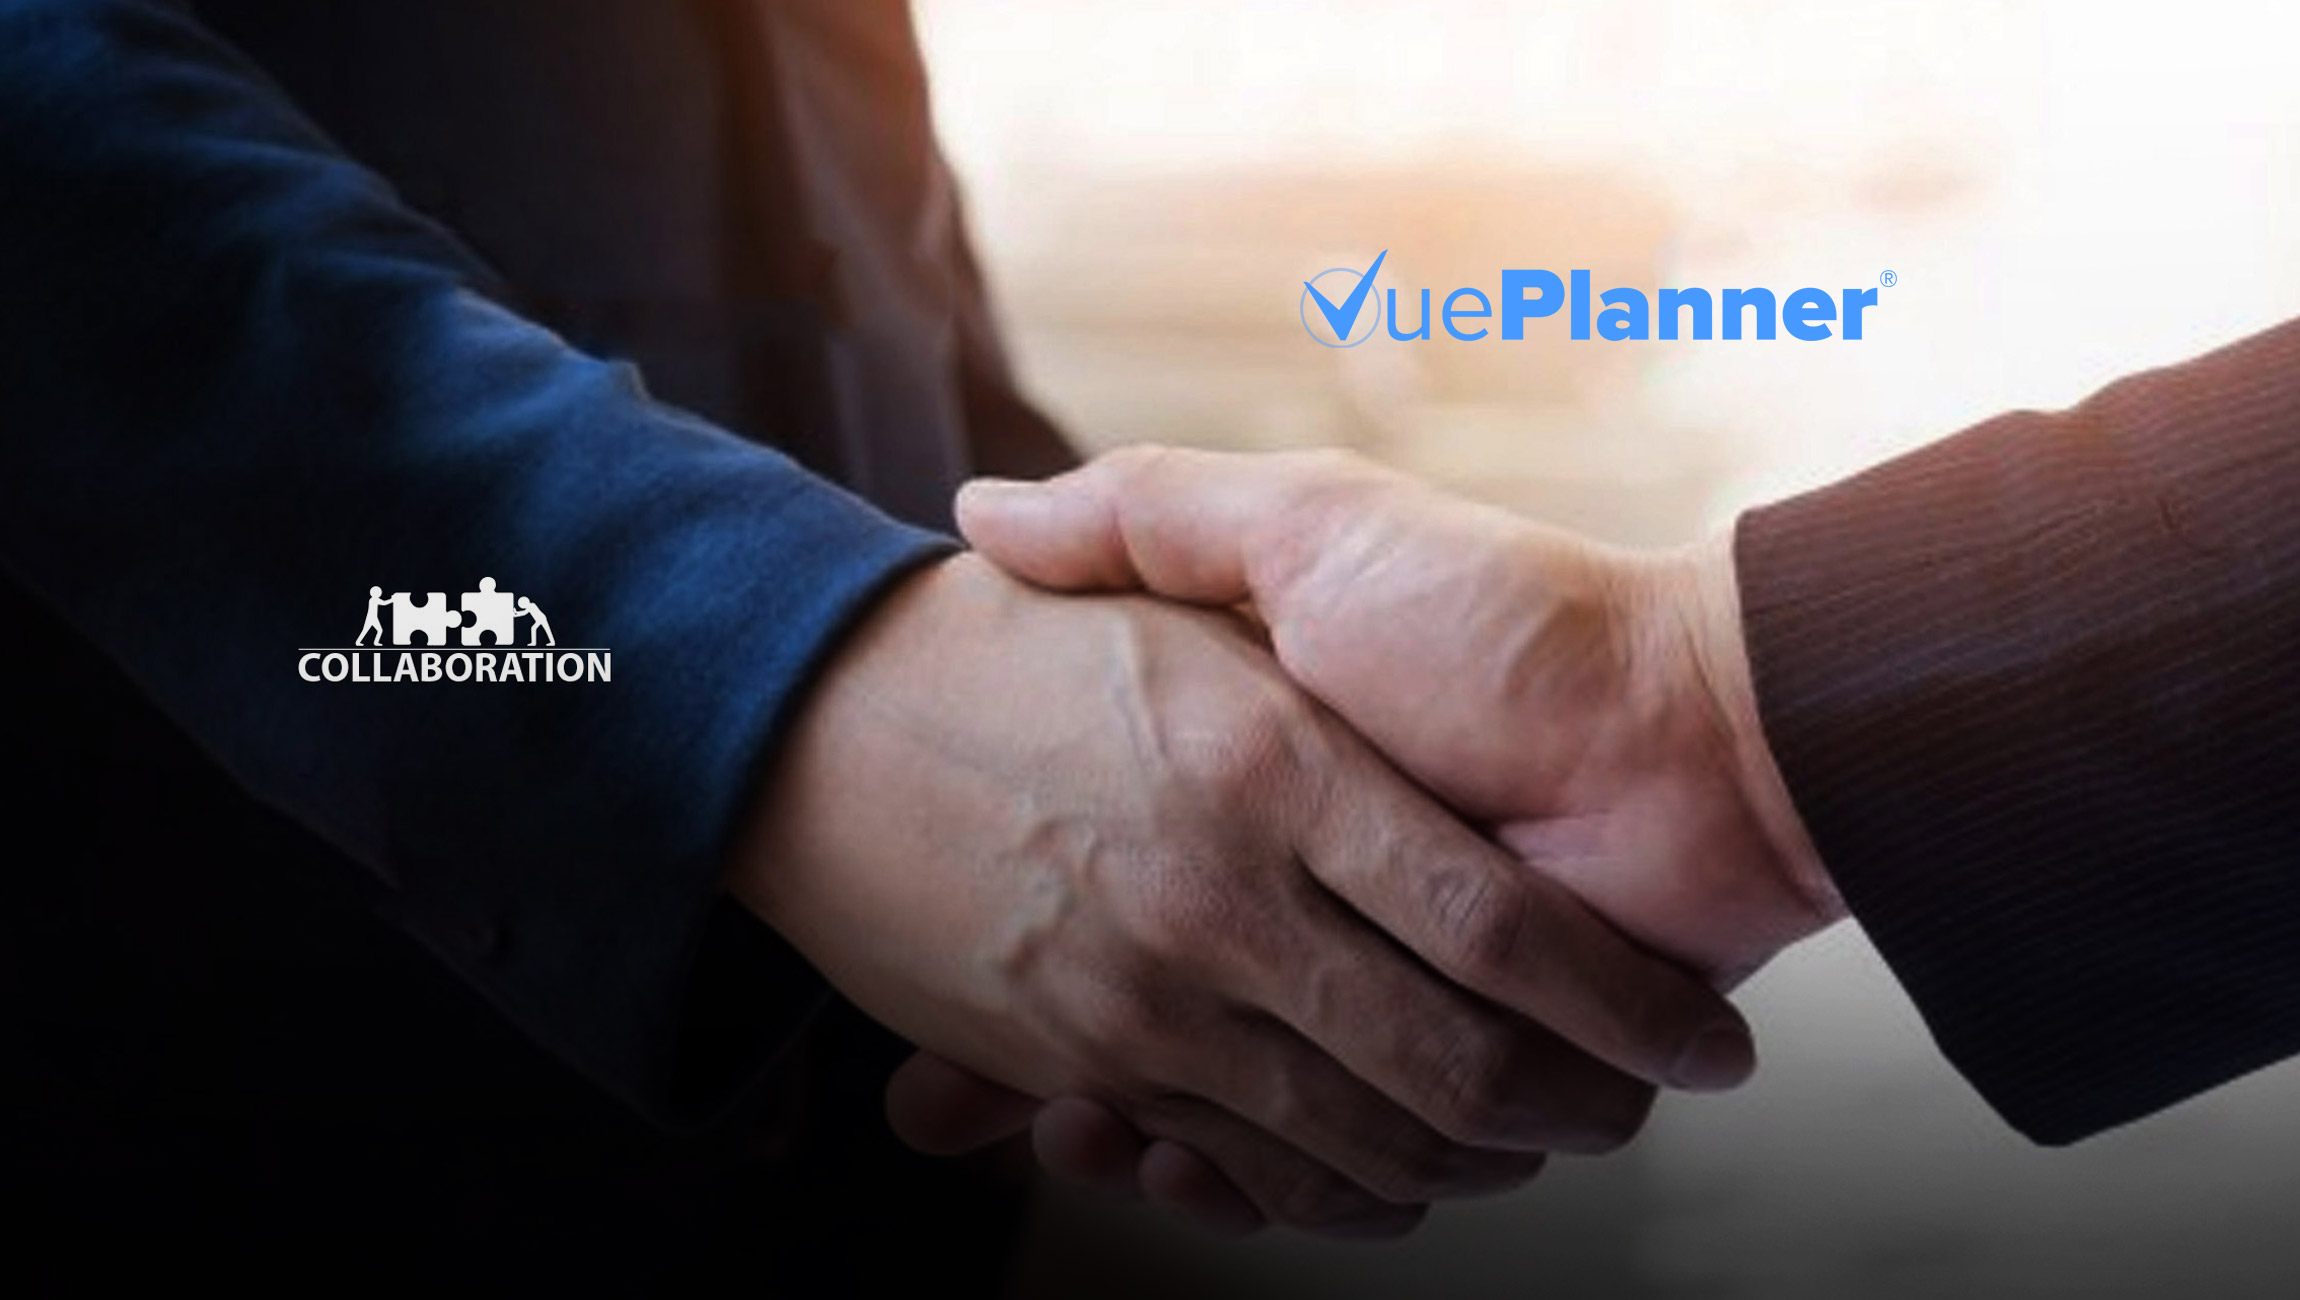 VuePlanner Verified As YouTube Brand Suitability & Contextual Targeting Partner